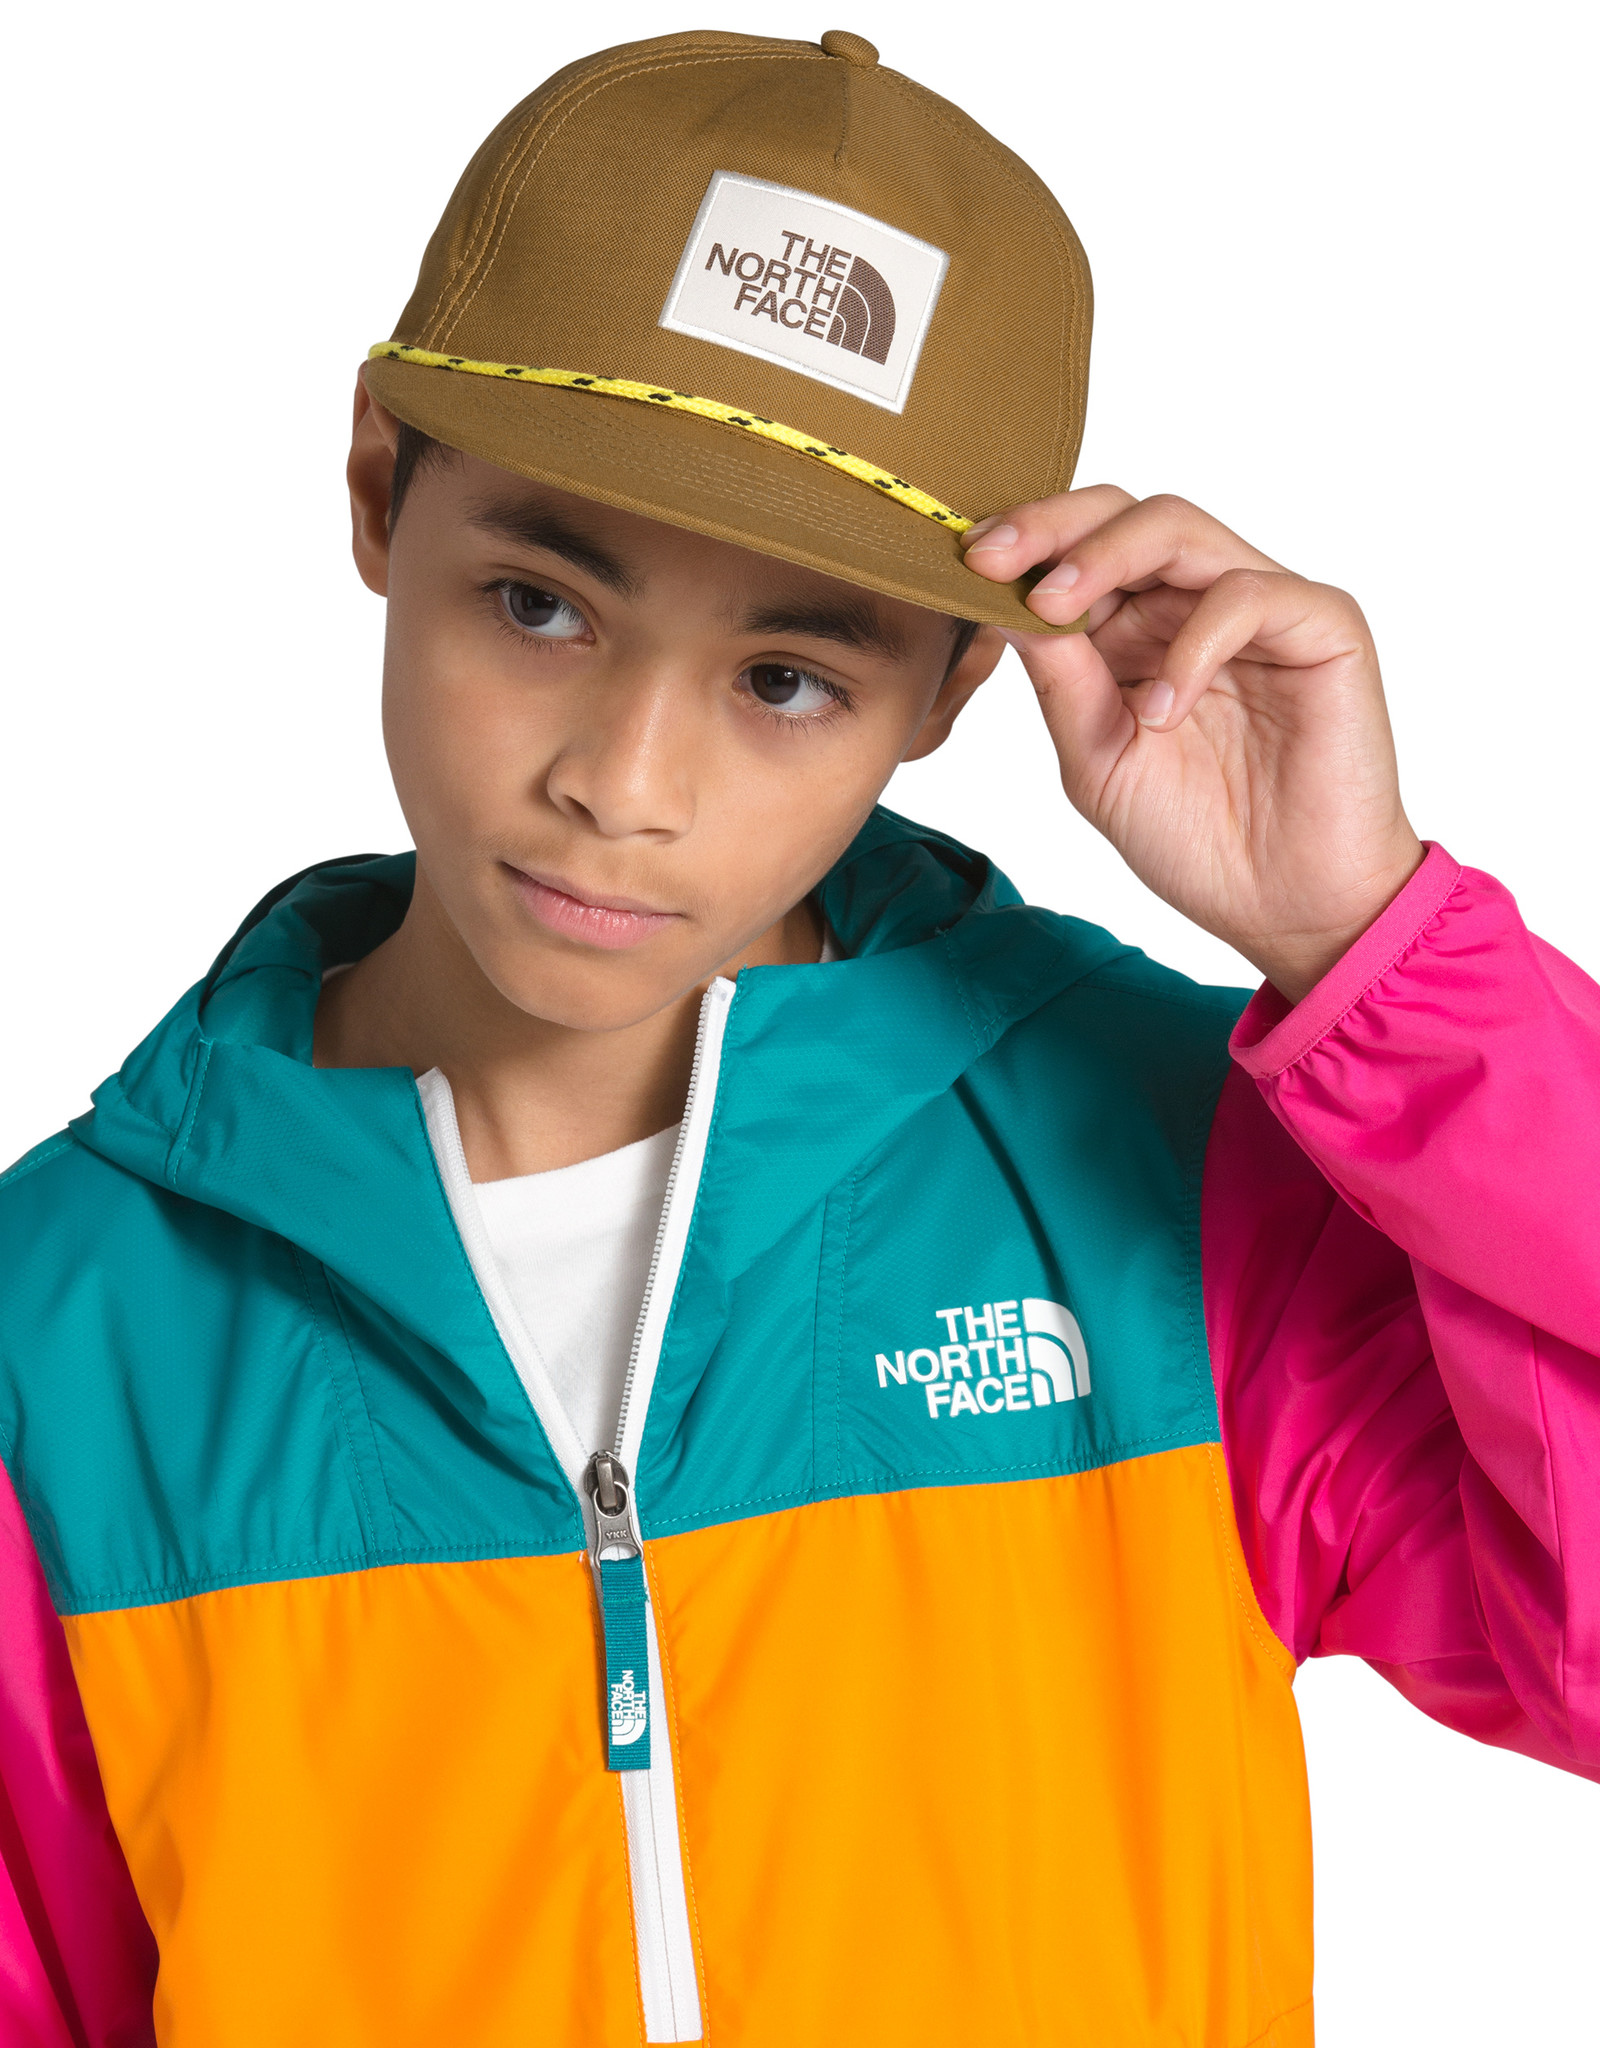 The North Face The North Face Youth Corded Ball Cap - S2020